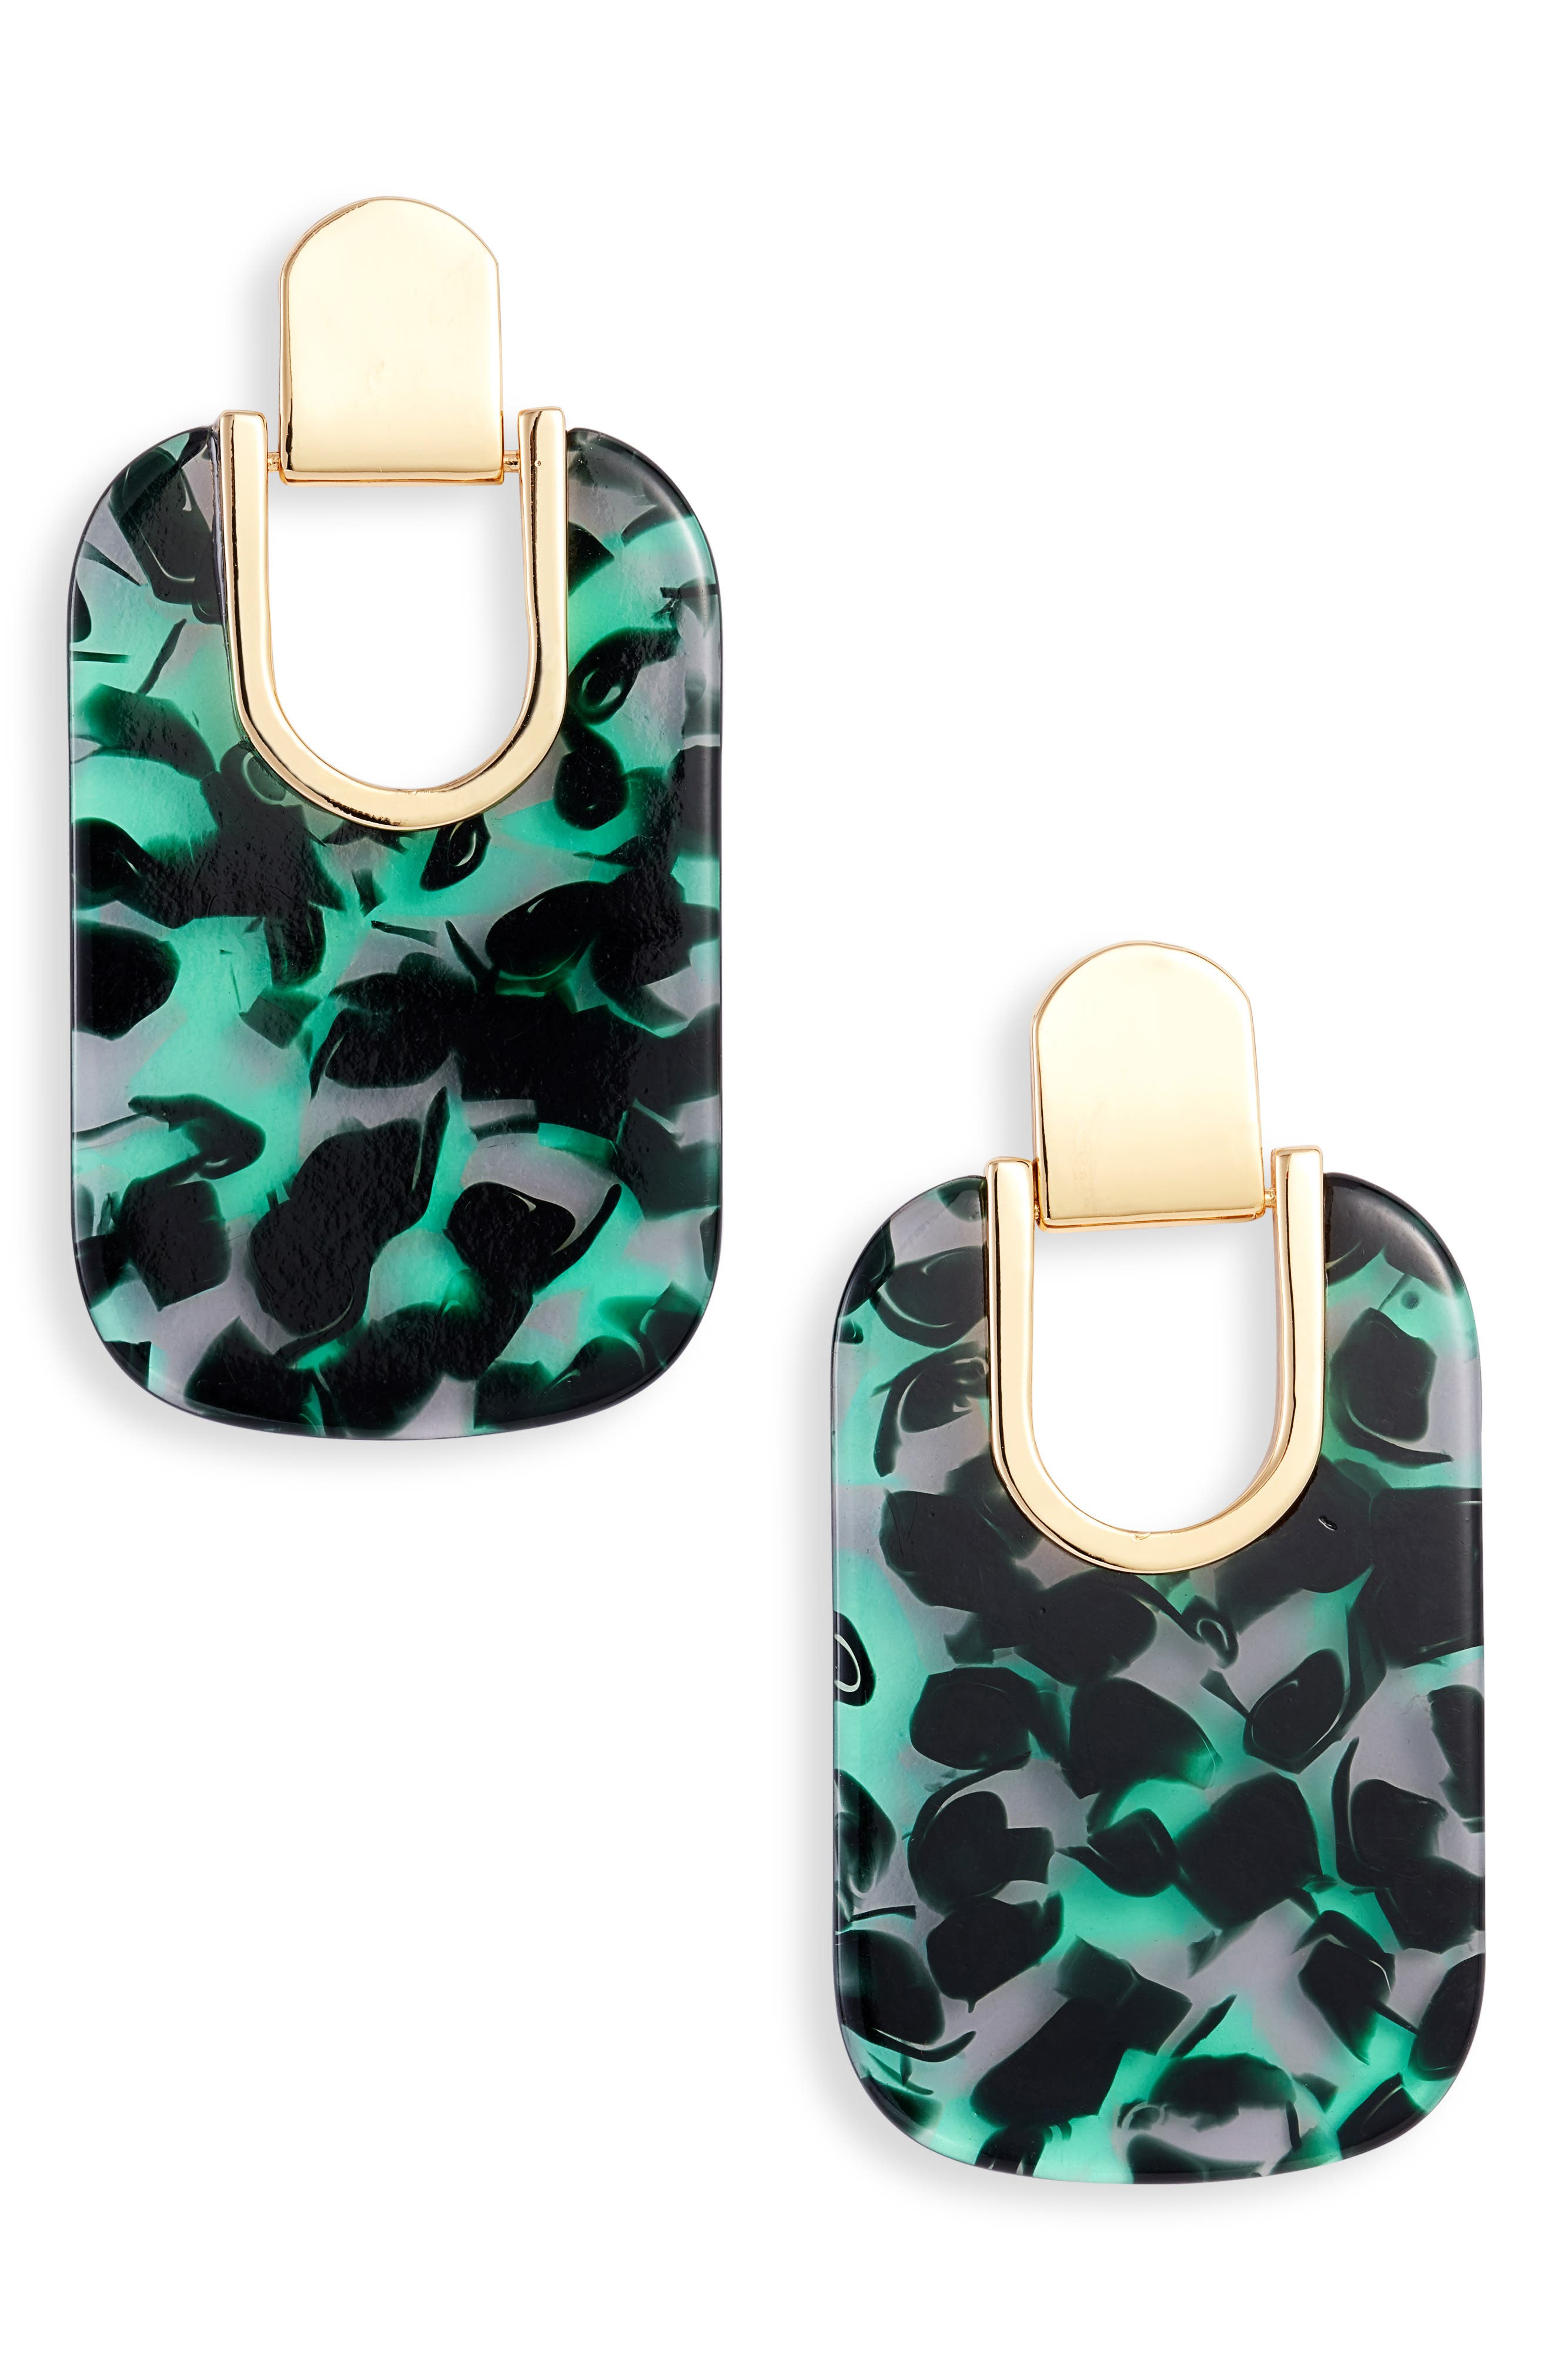 Vintage Style Jewelry, Retro Jewelry Womens Kate Spade New York Statement Earrings $58.00 AT vintagedancer.com